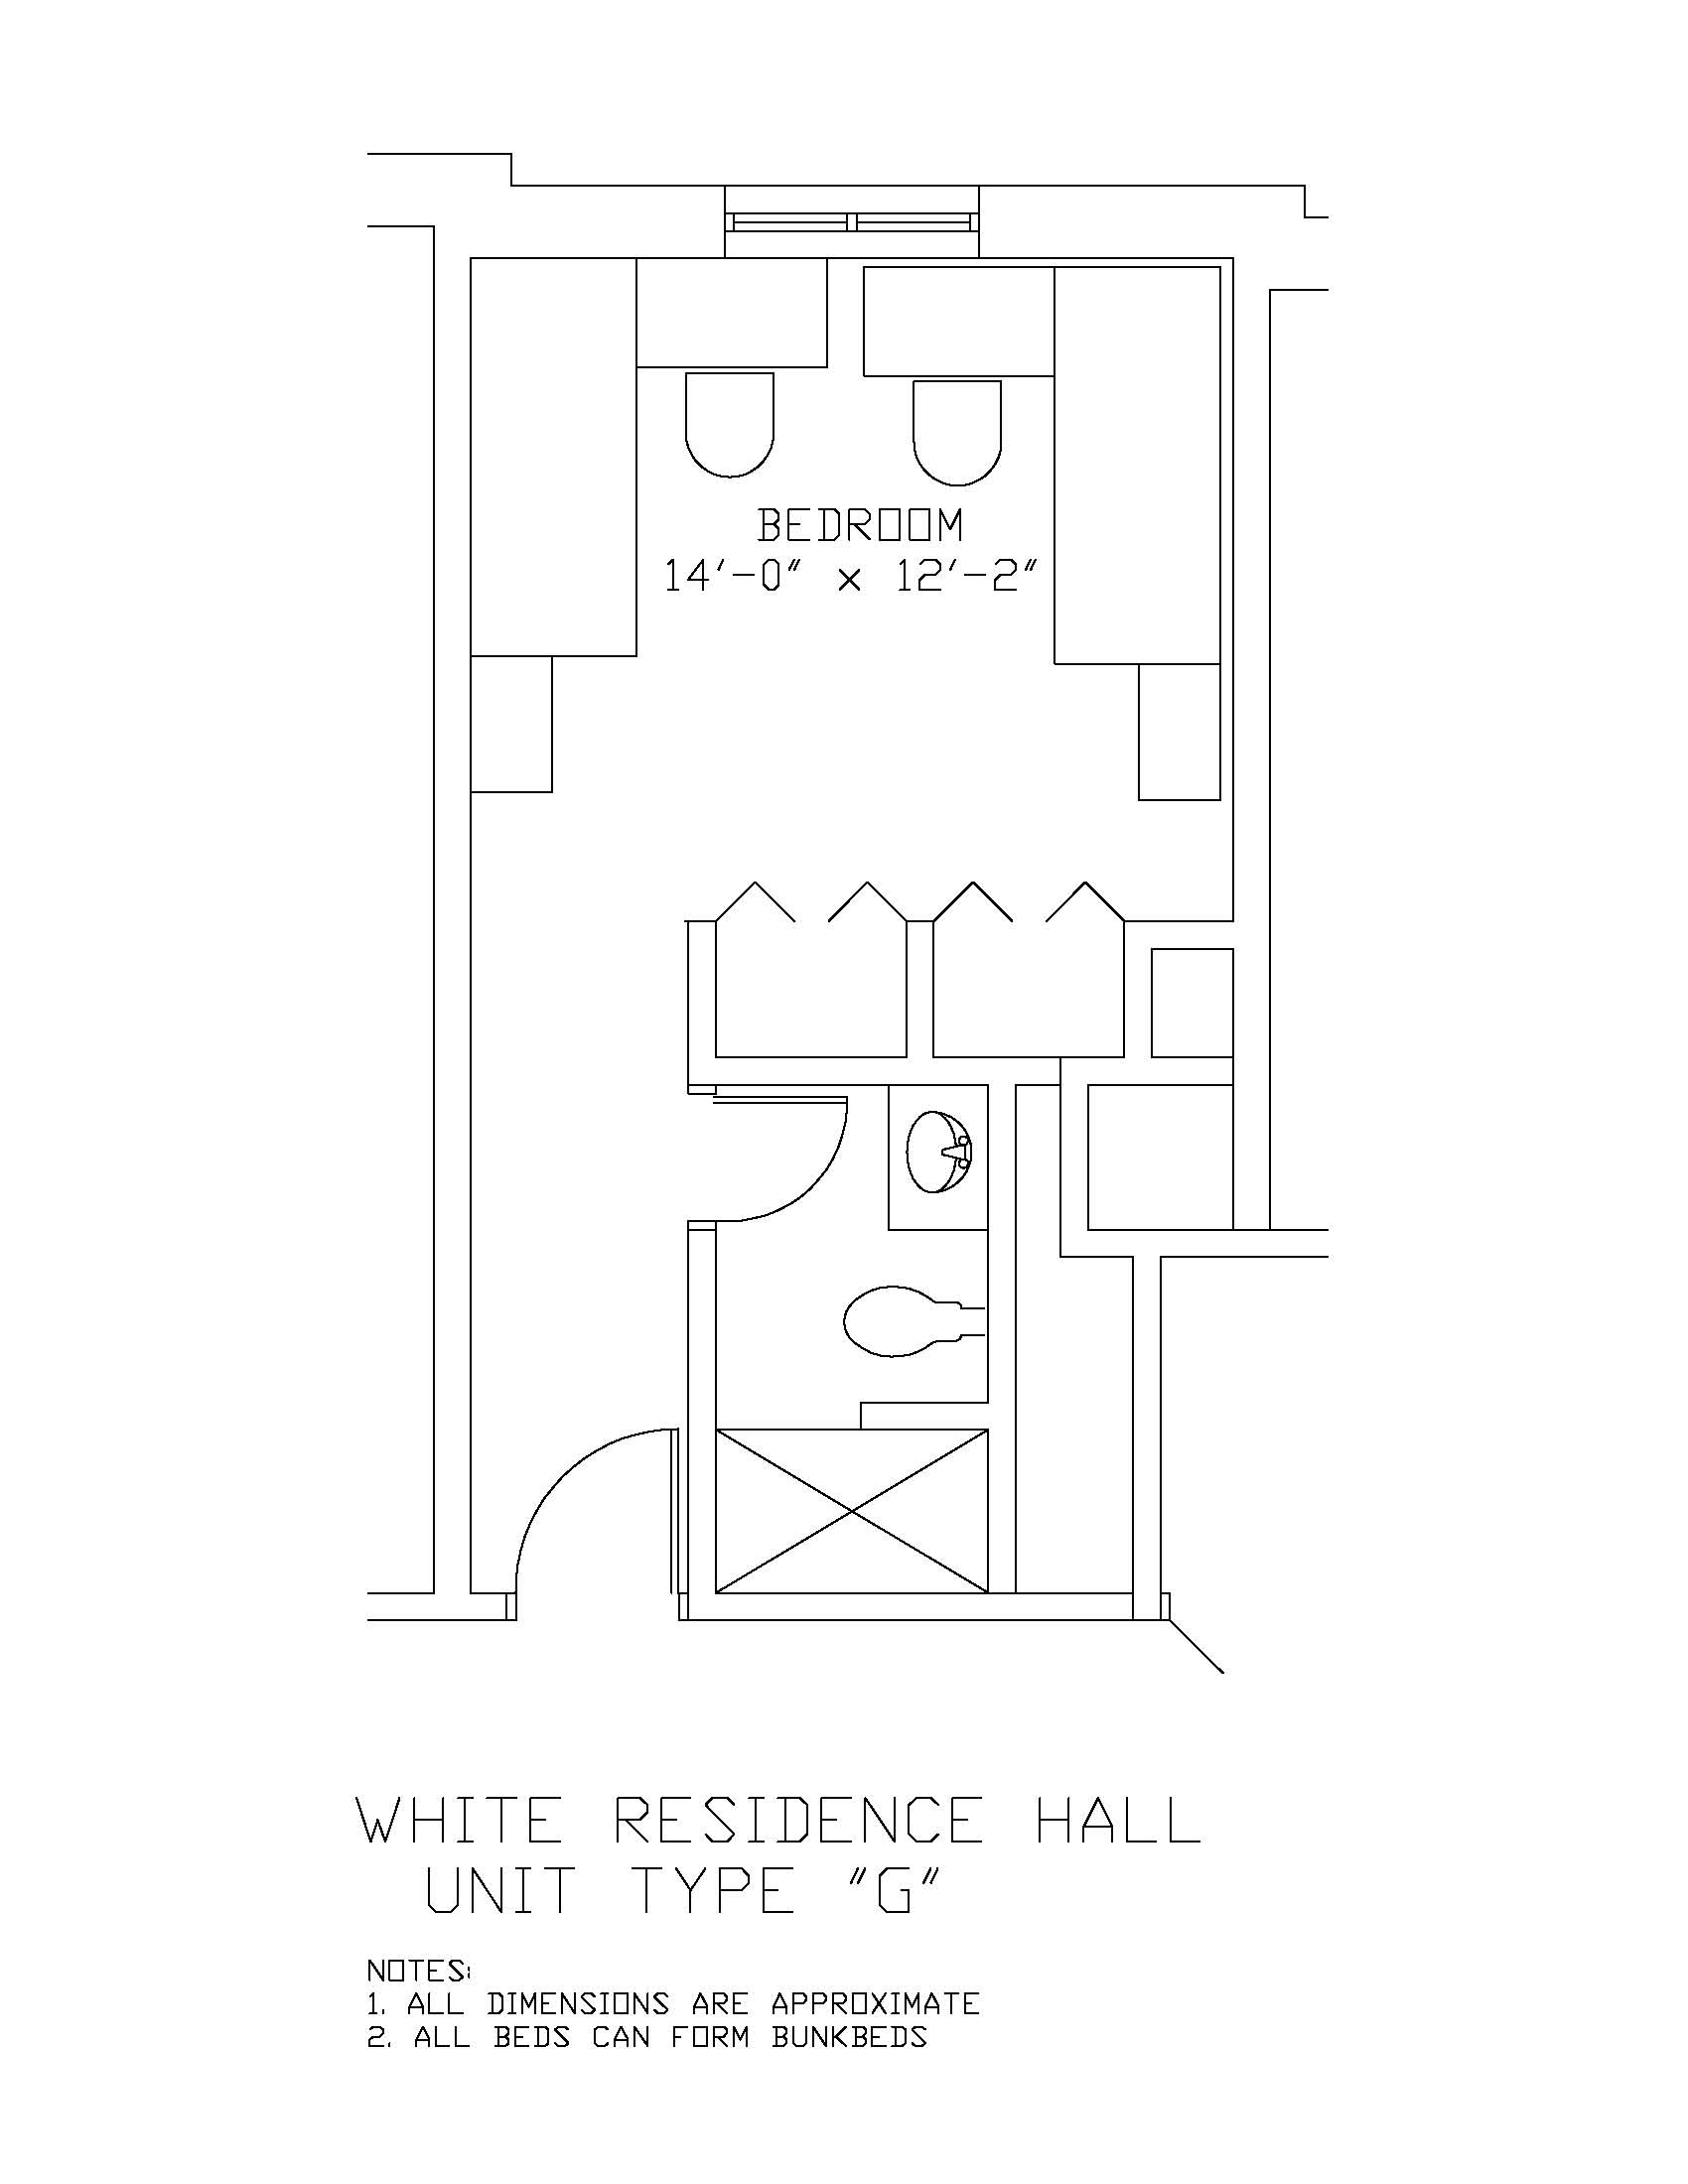 James S. White Hall: Type G